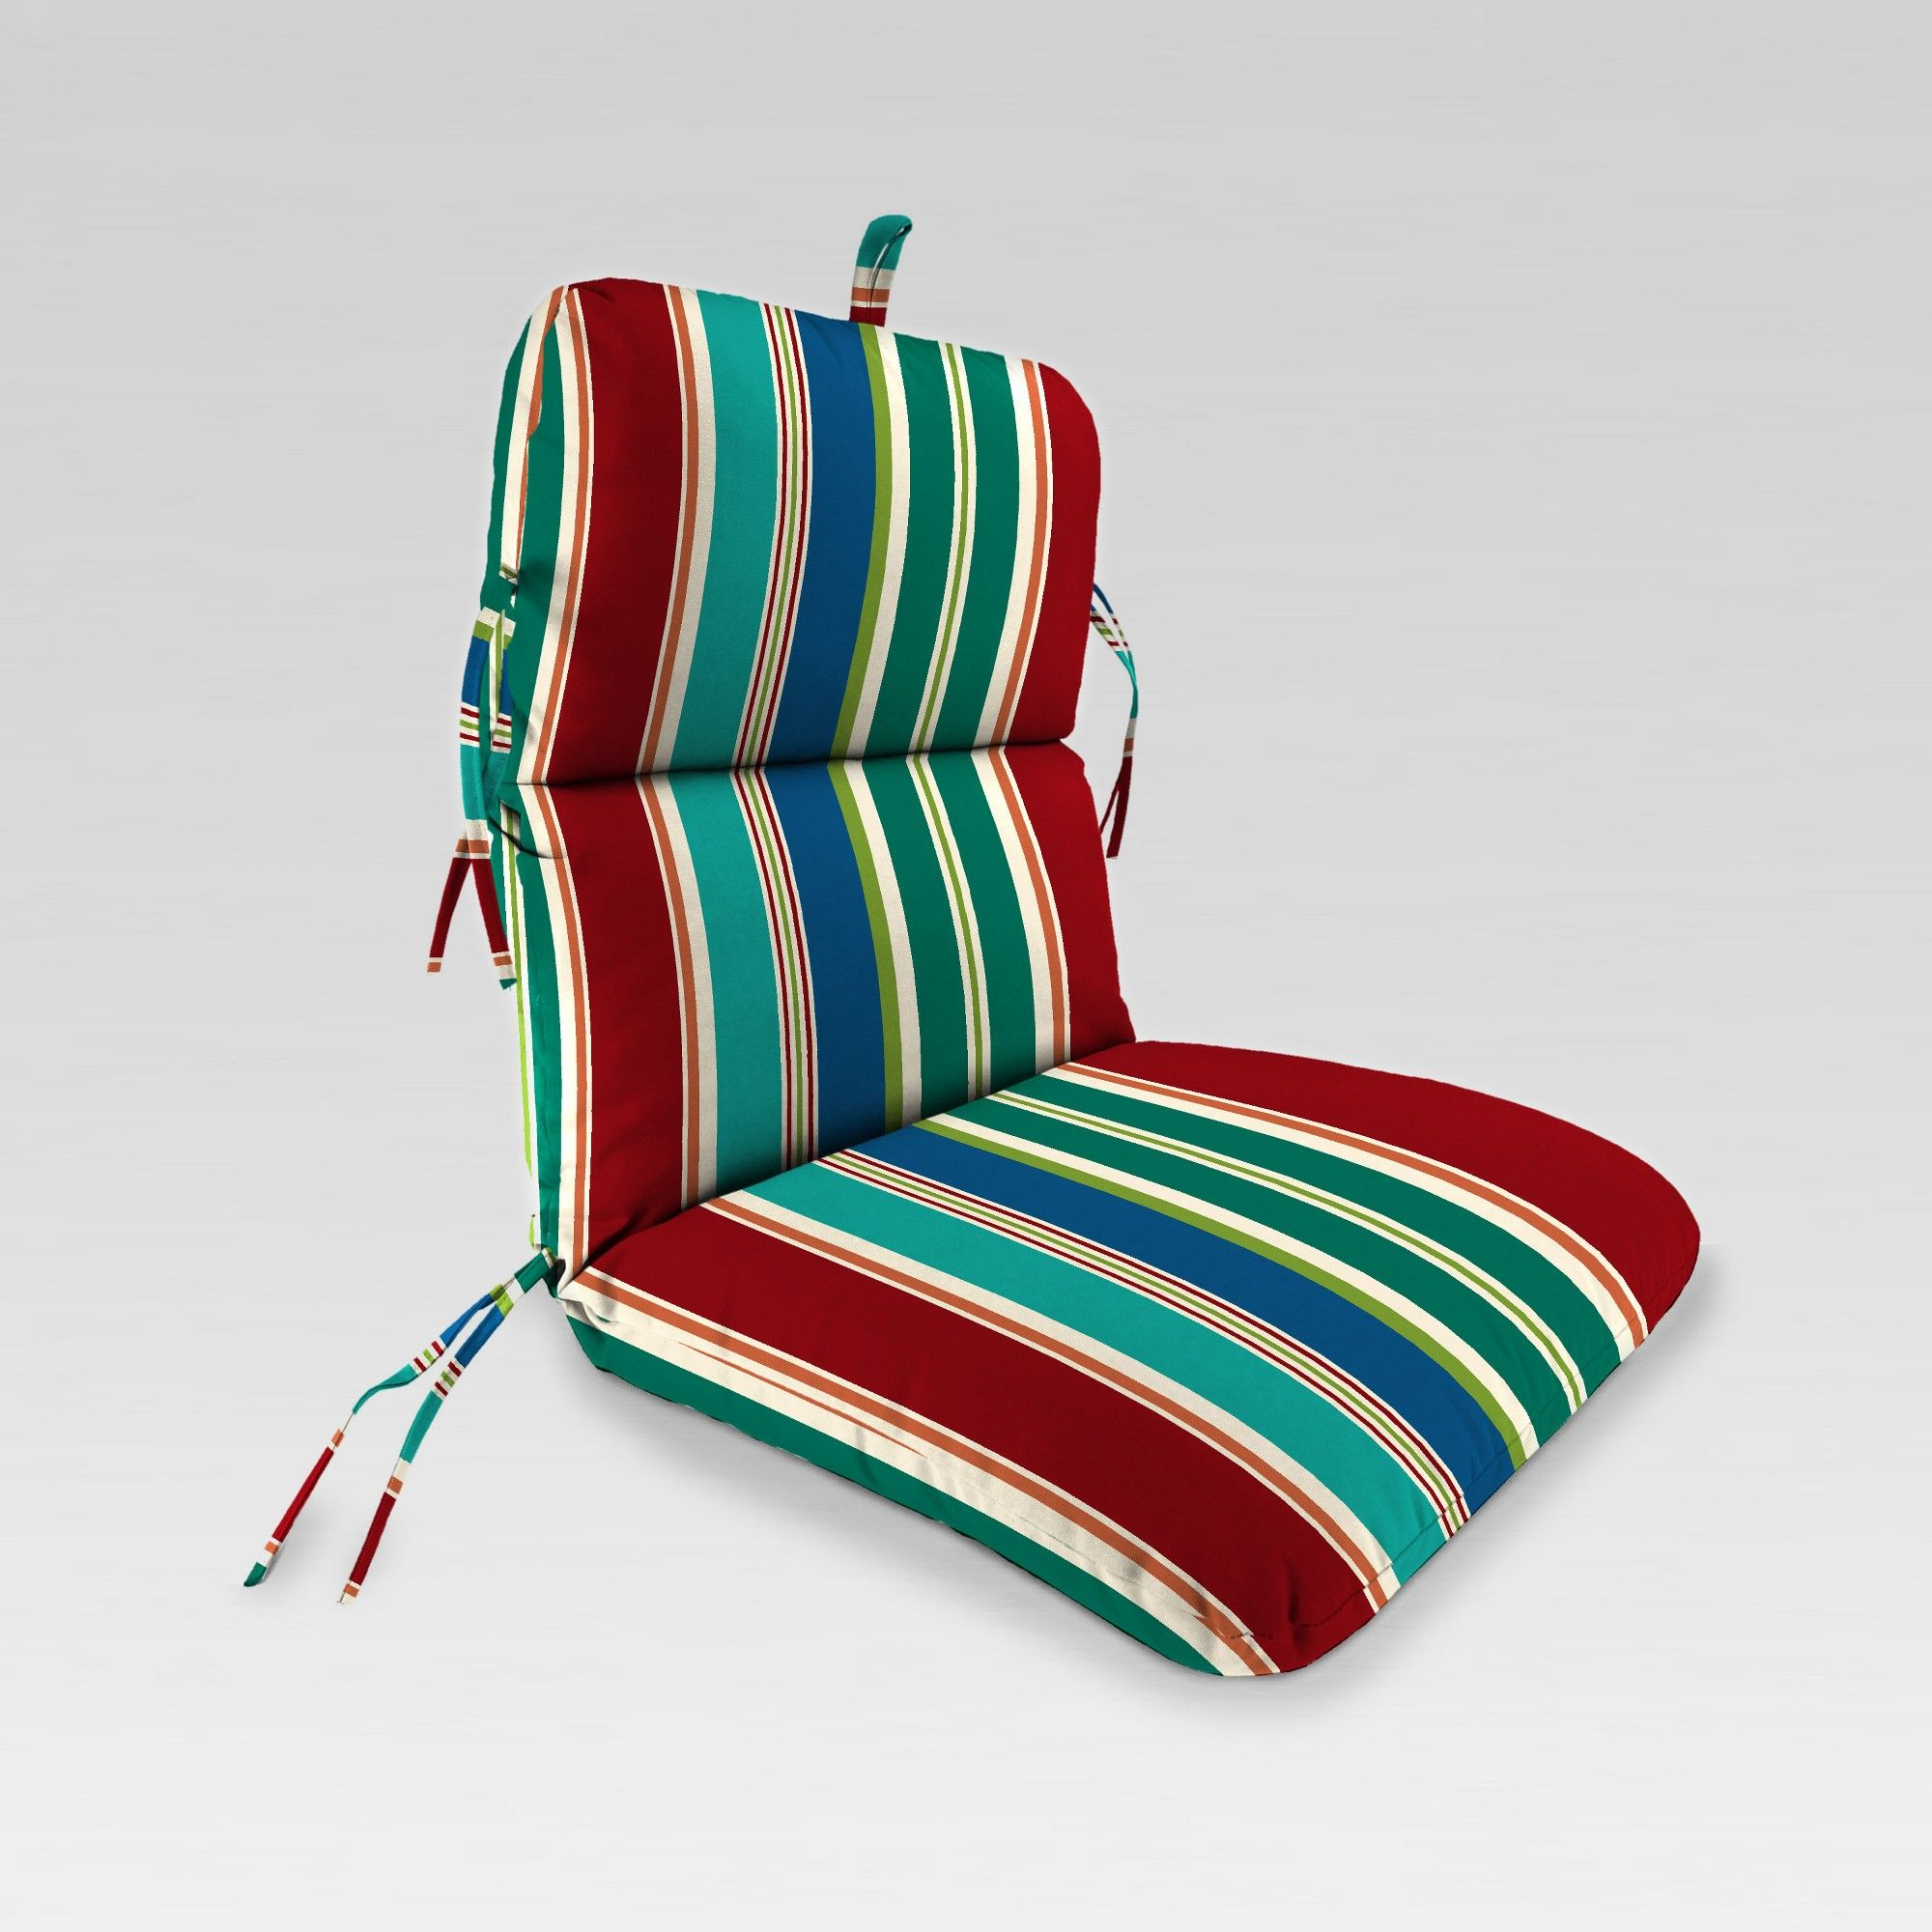 Outdoor Knife Edge Dining Chair Cushion - Red/Blue/Green ...